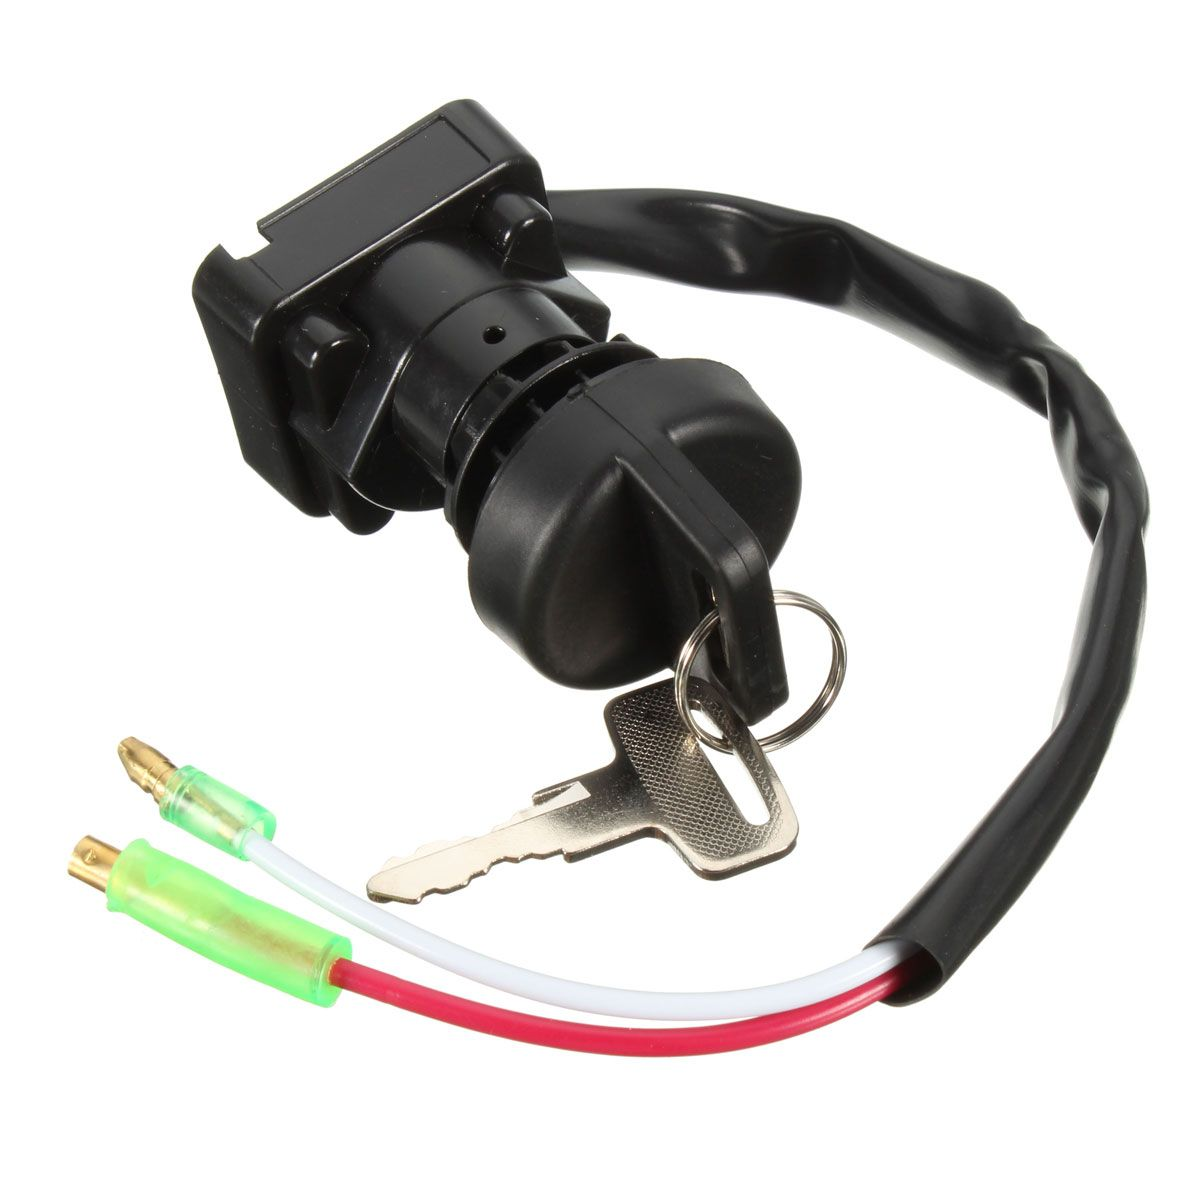 Ignition Switch With 2 Keys For Kawasaki Klf300 Bayou 300 1997 2003 Atv Bayou Atv Uganda